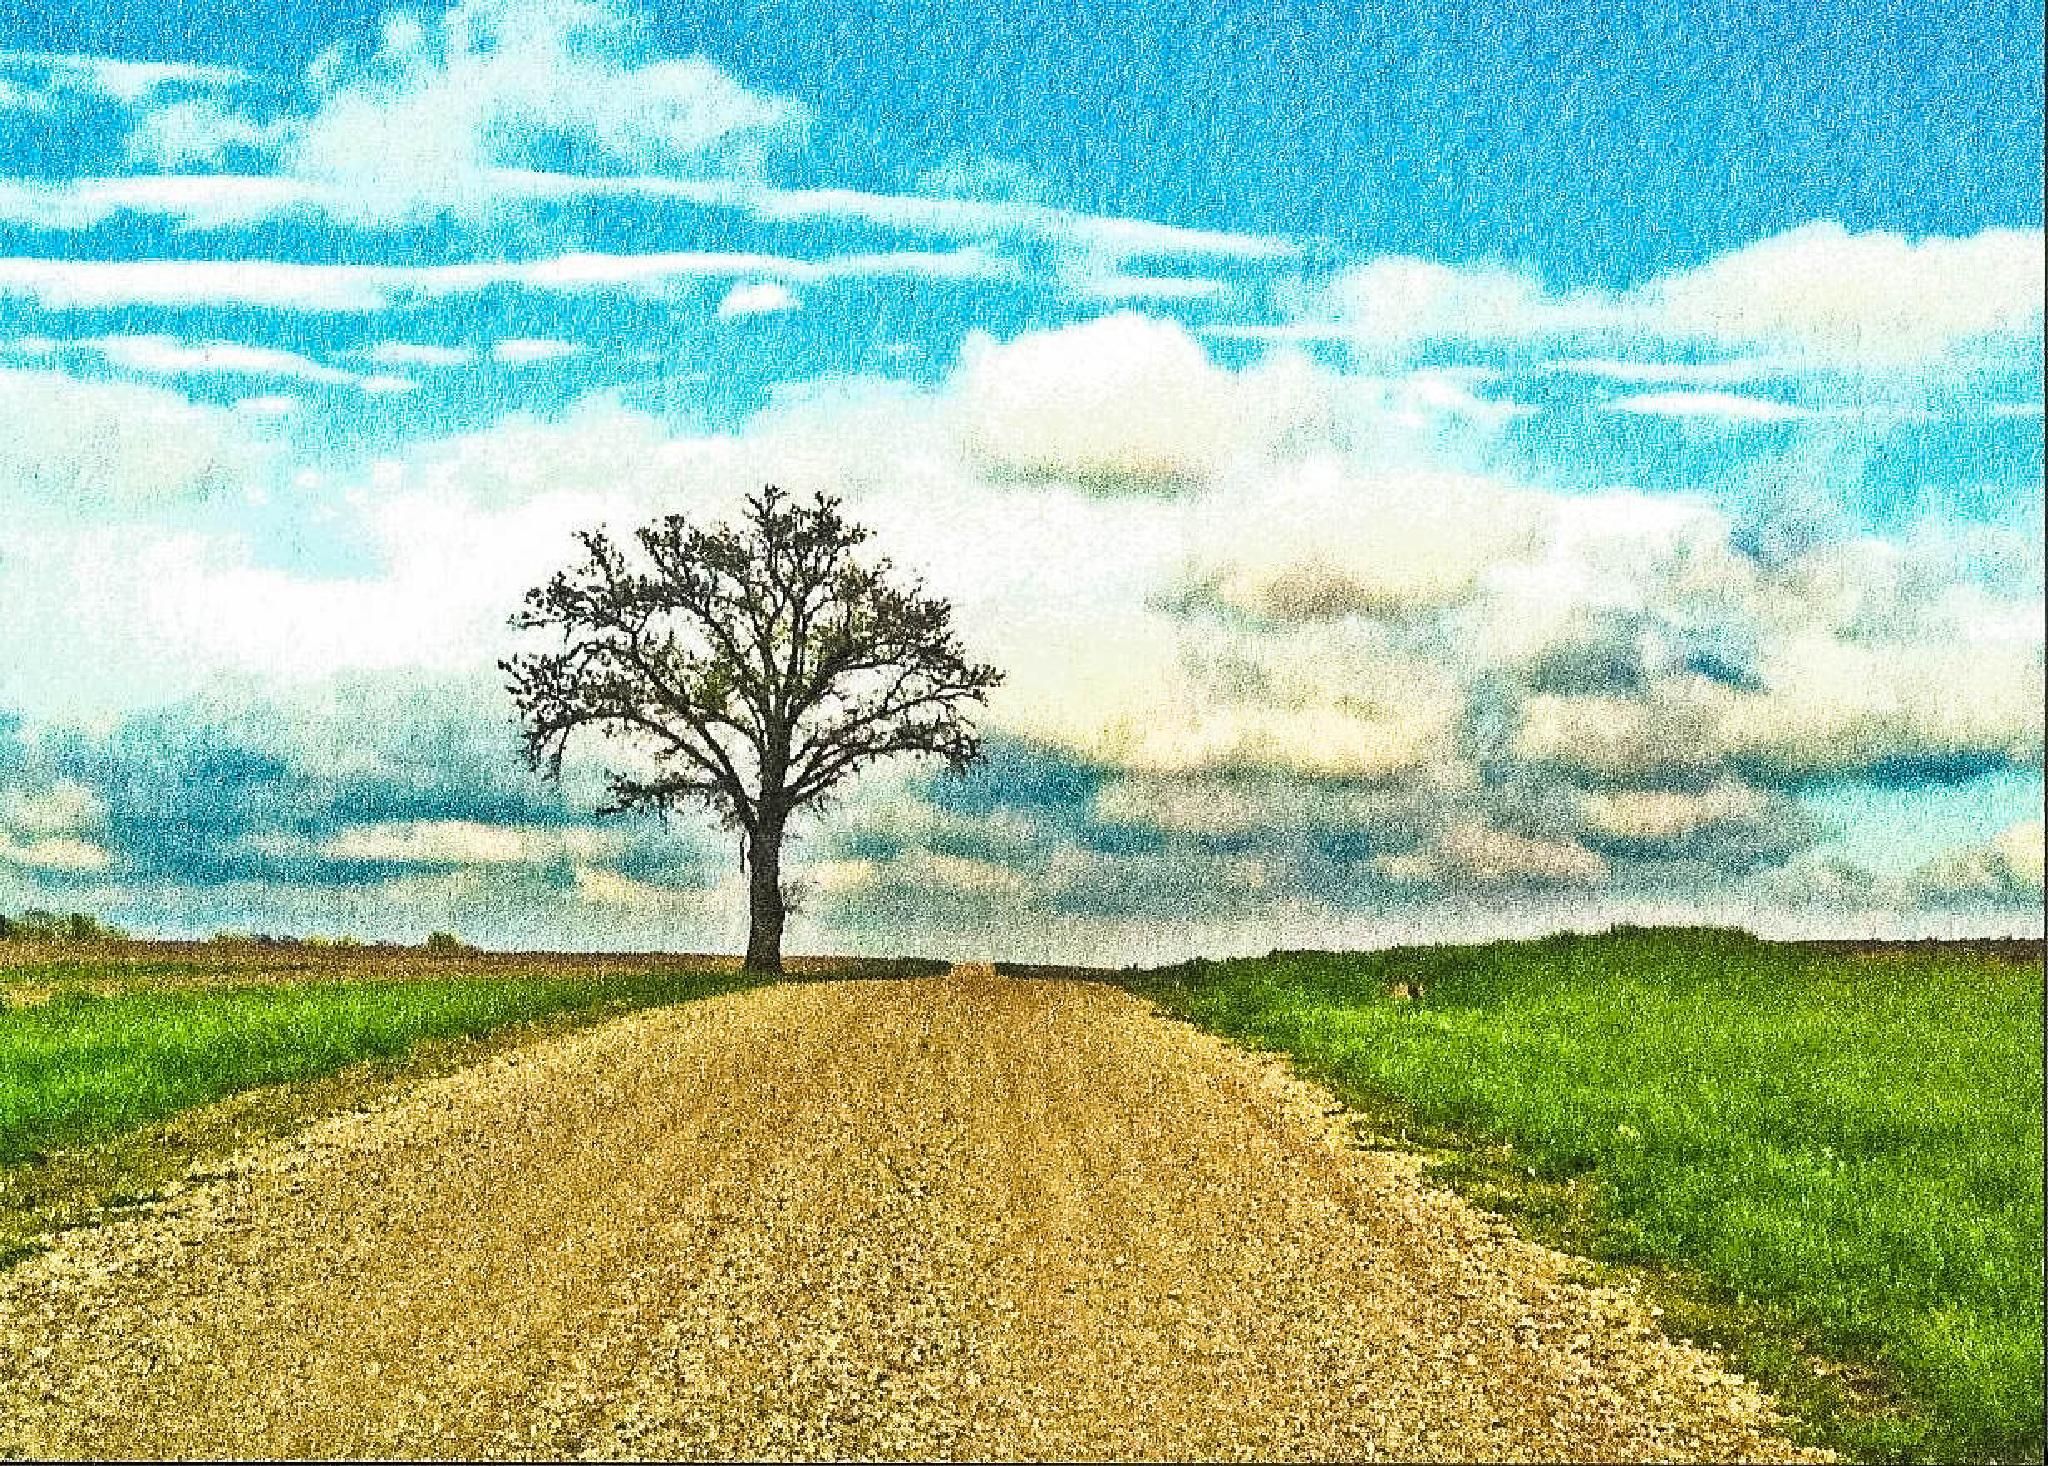 Tree on Wood Road (HDR) printed on watercolor paper by Mark Hootman